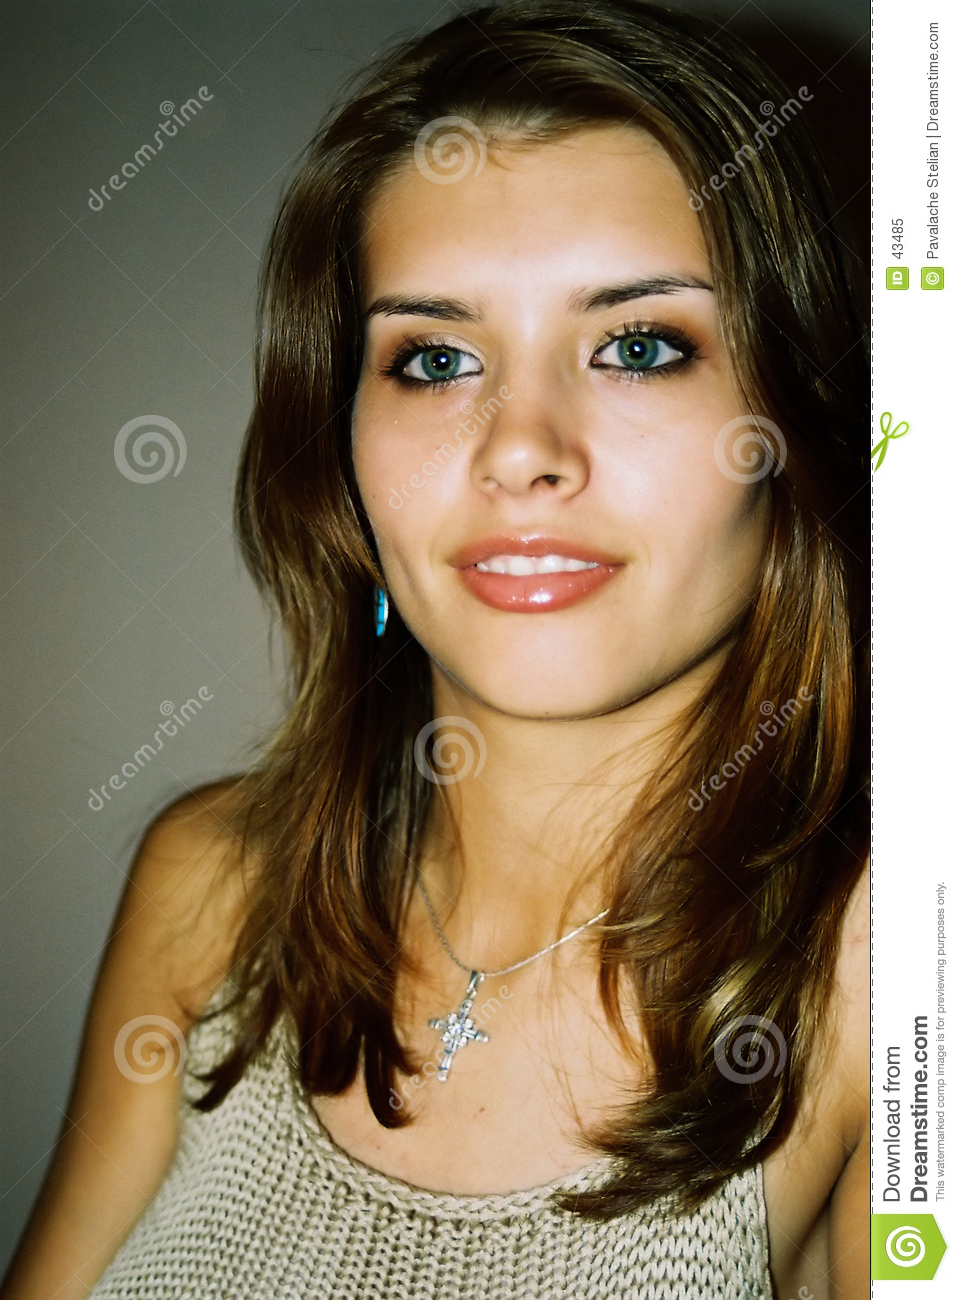 Beautiful And Girl Smiling